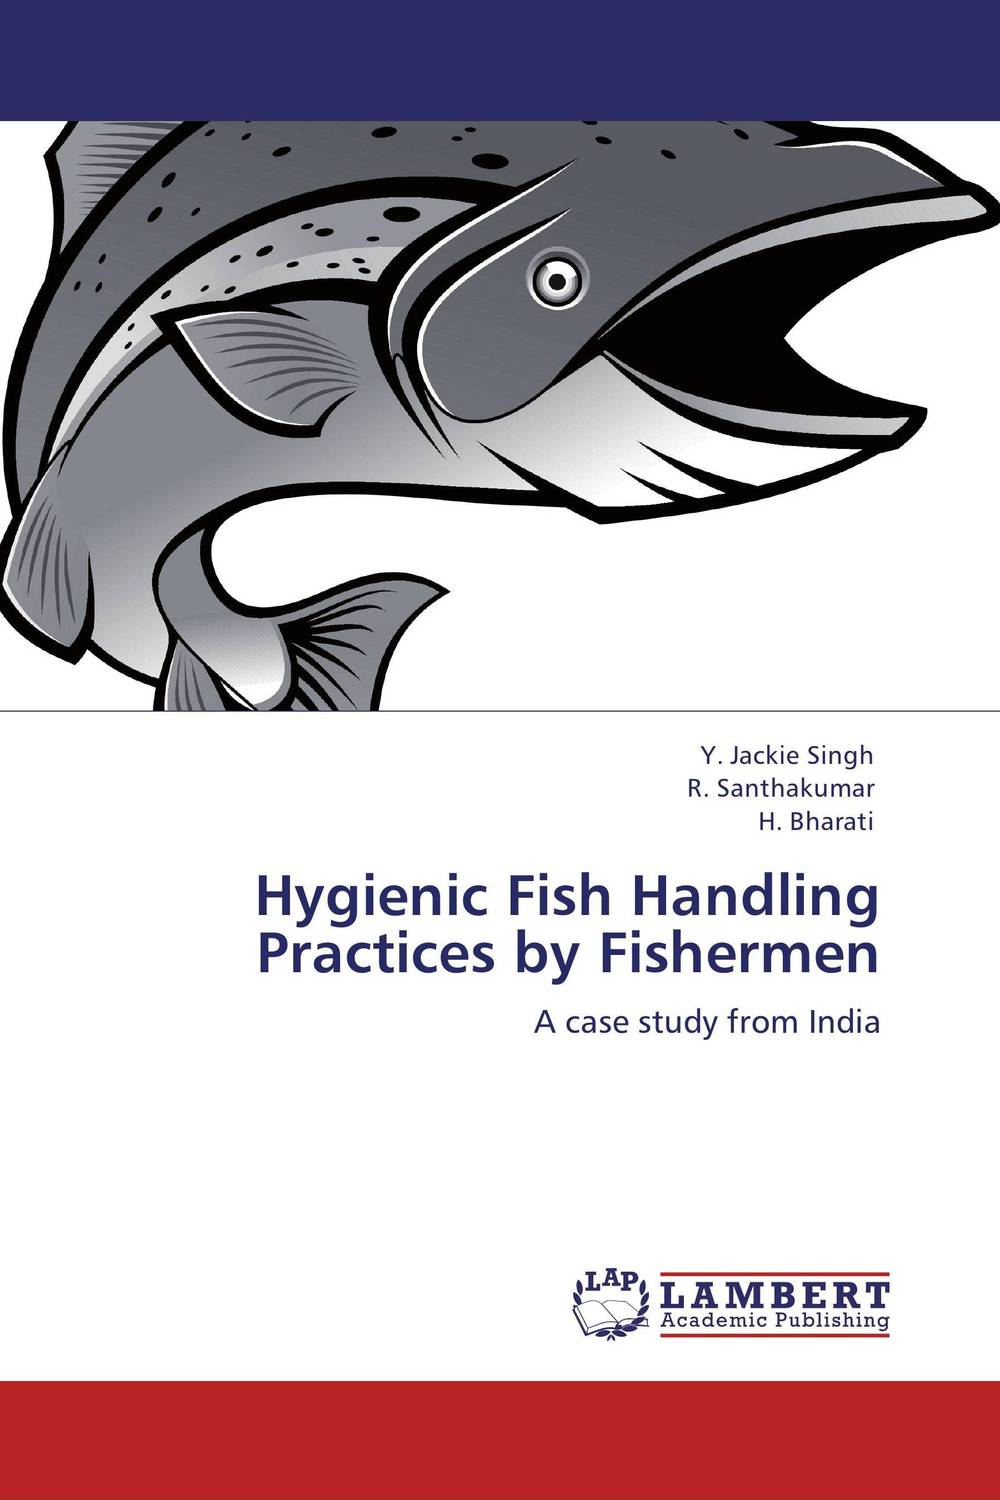 Hygienic Fish Handling Practices by Fishermen